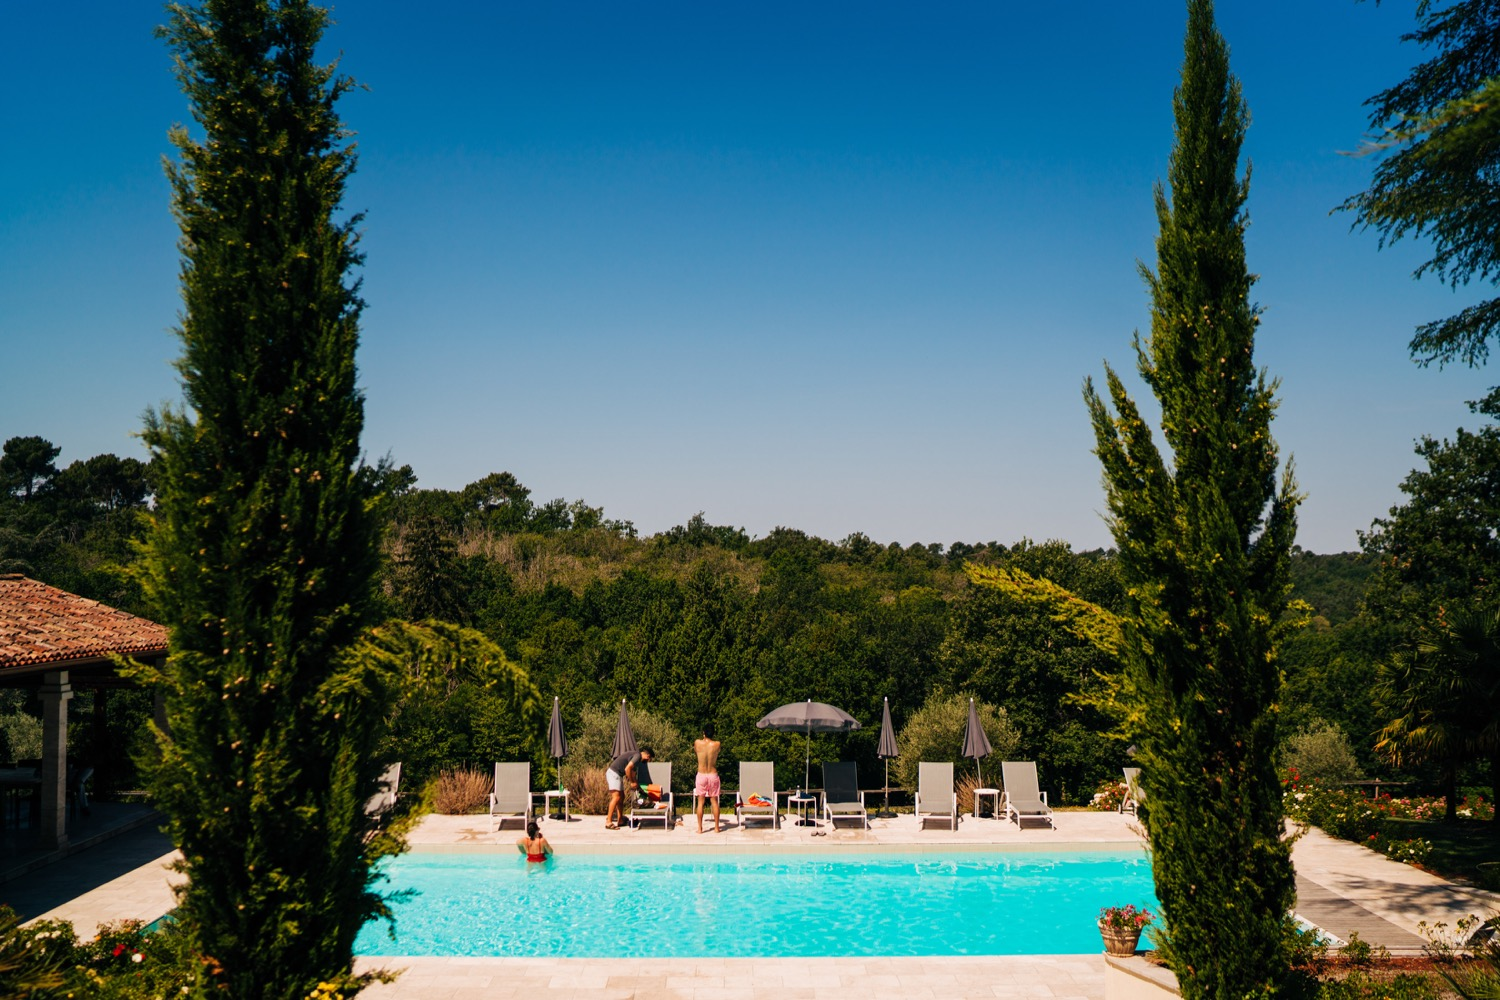 An outdoor pool with a beautiful view at a popular European wedding venue Domaine La Fauconnie.